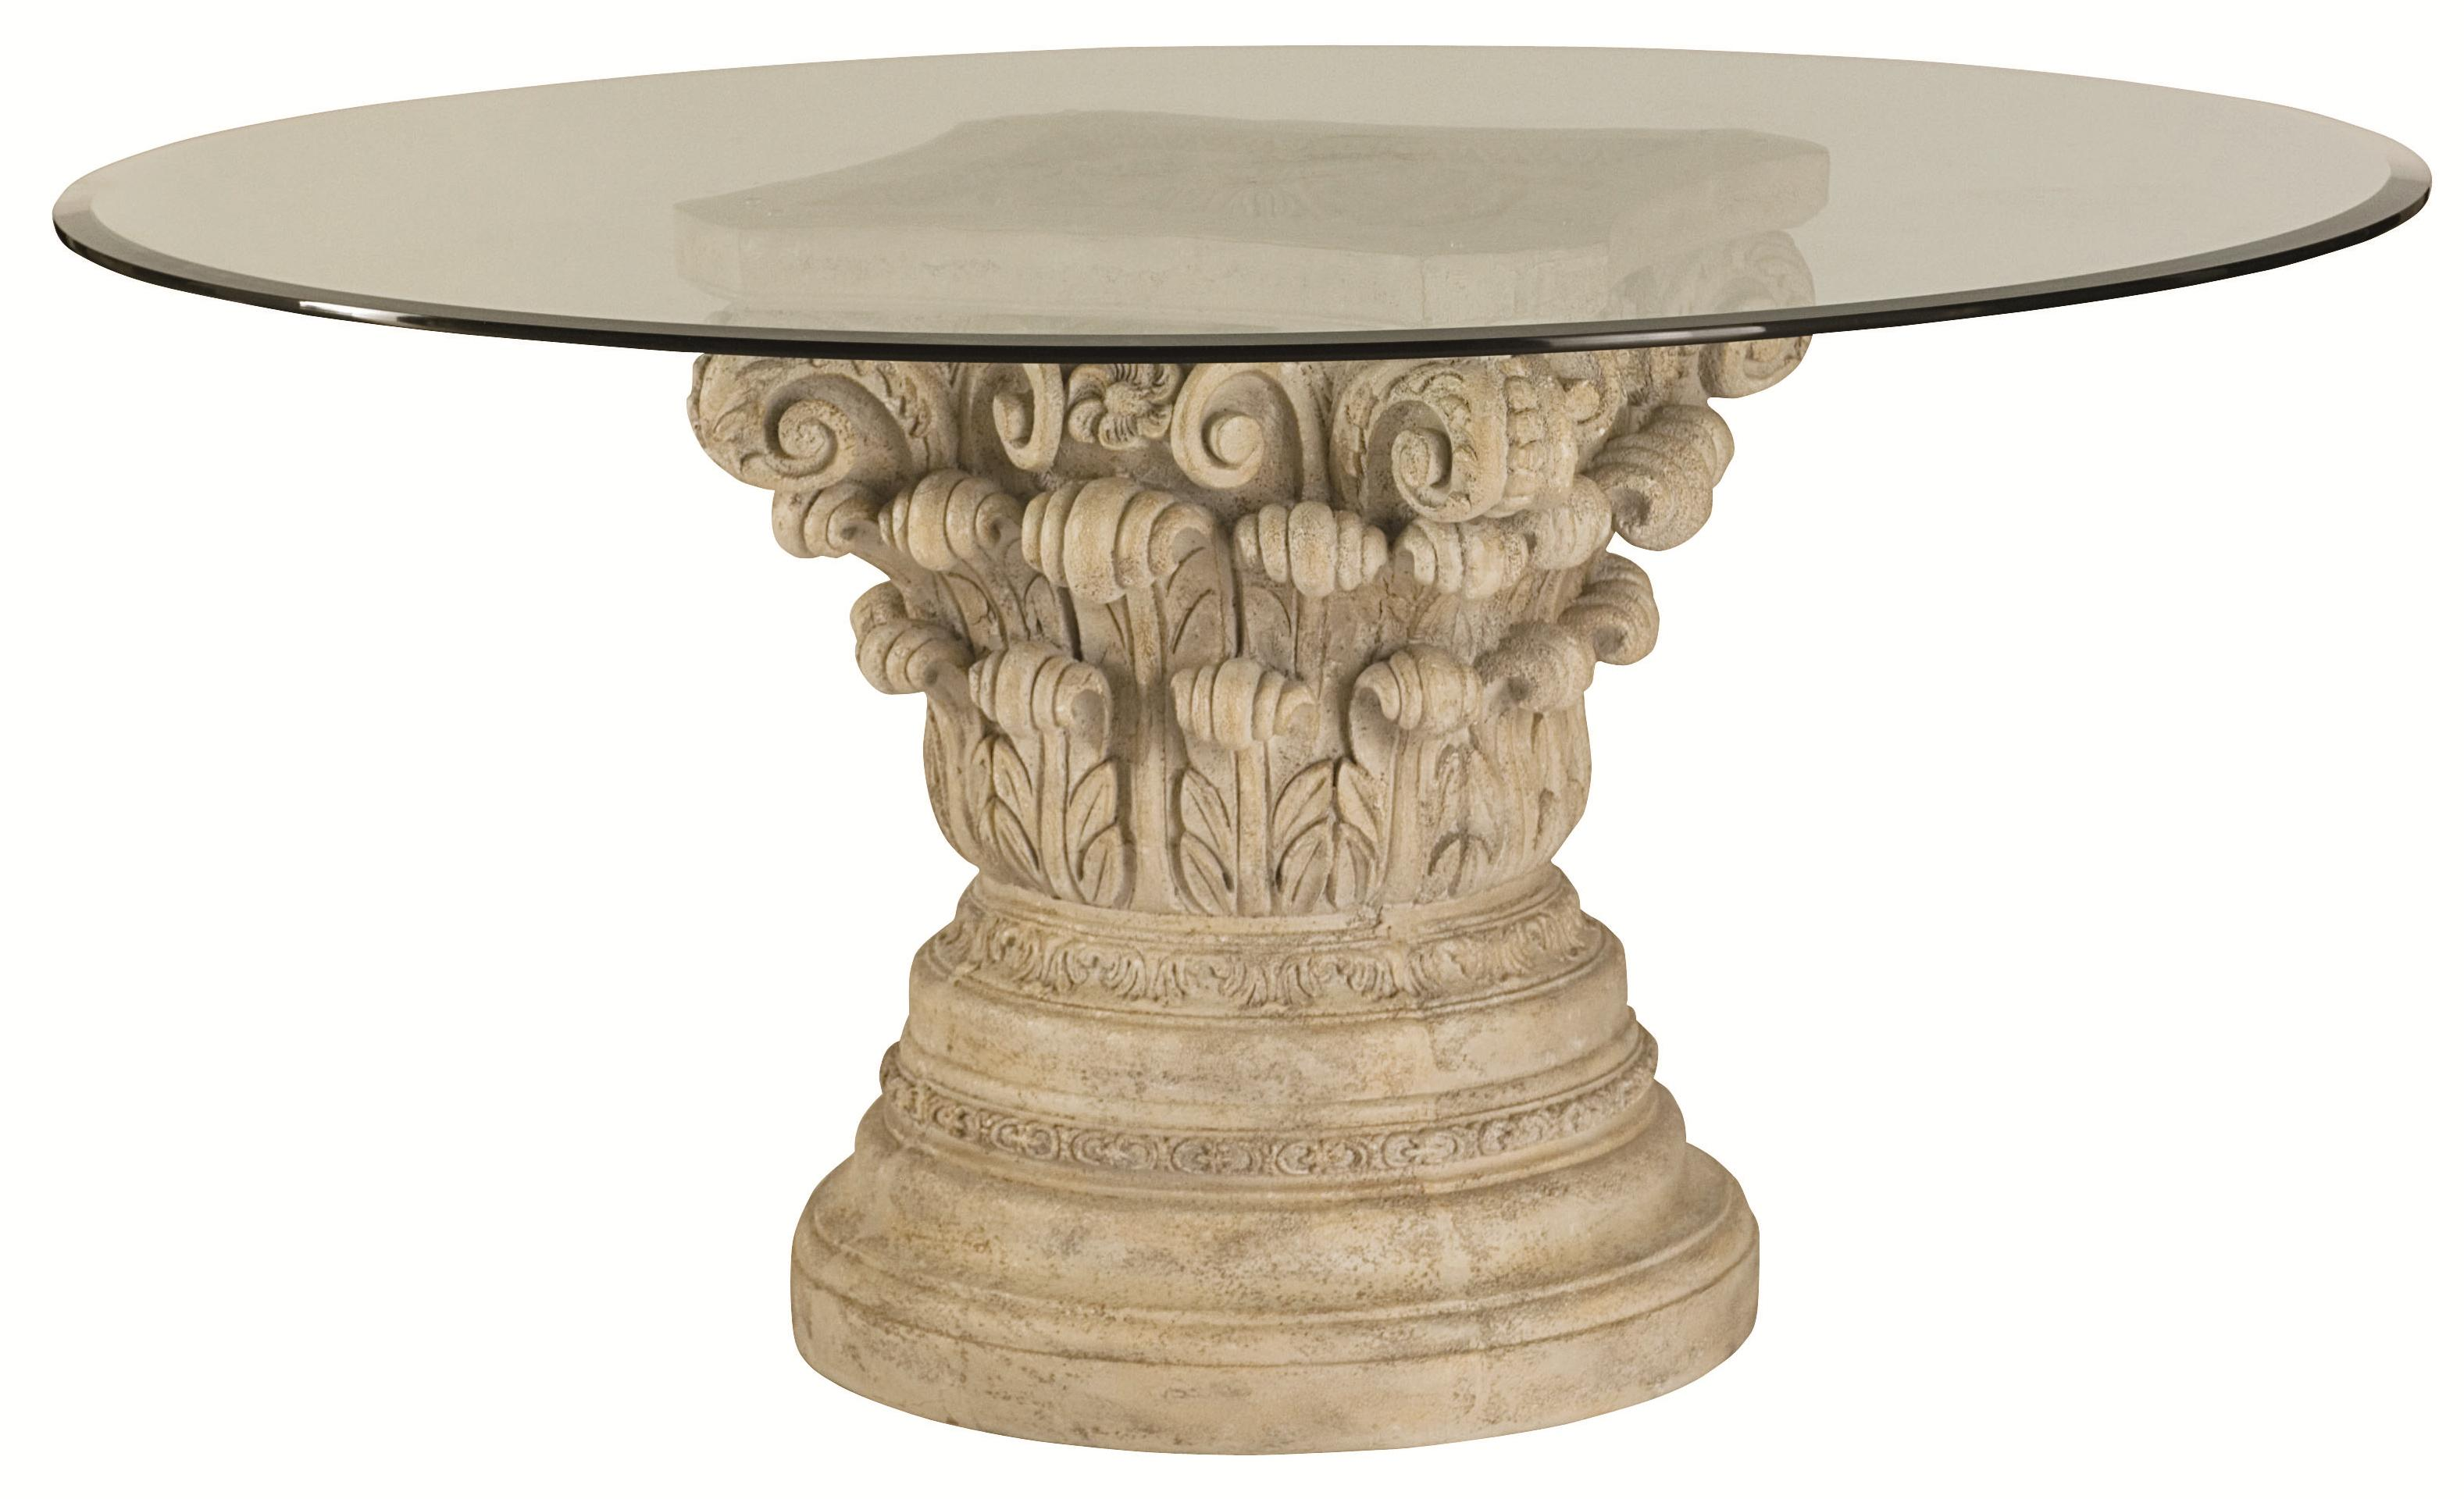 Beautiful Pedestal Table Base For Glass Top